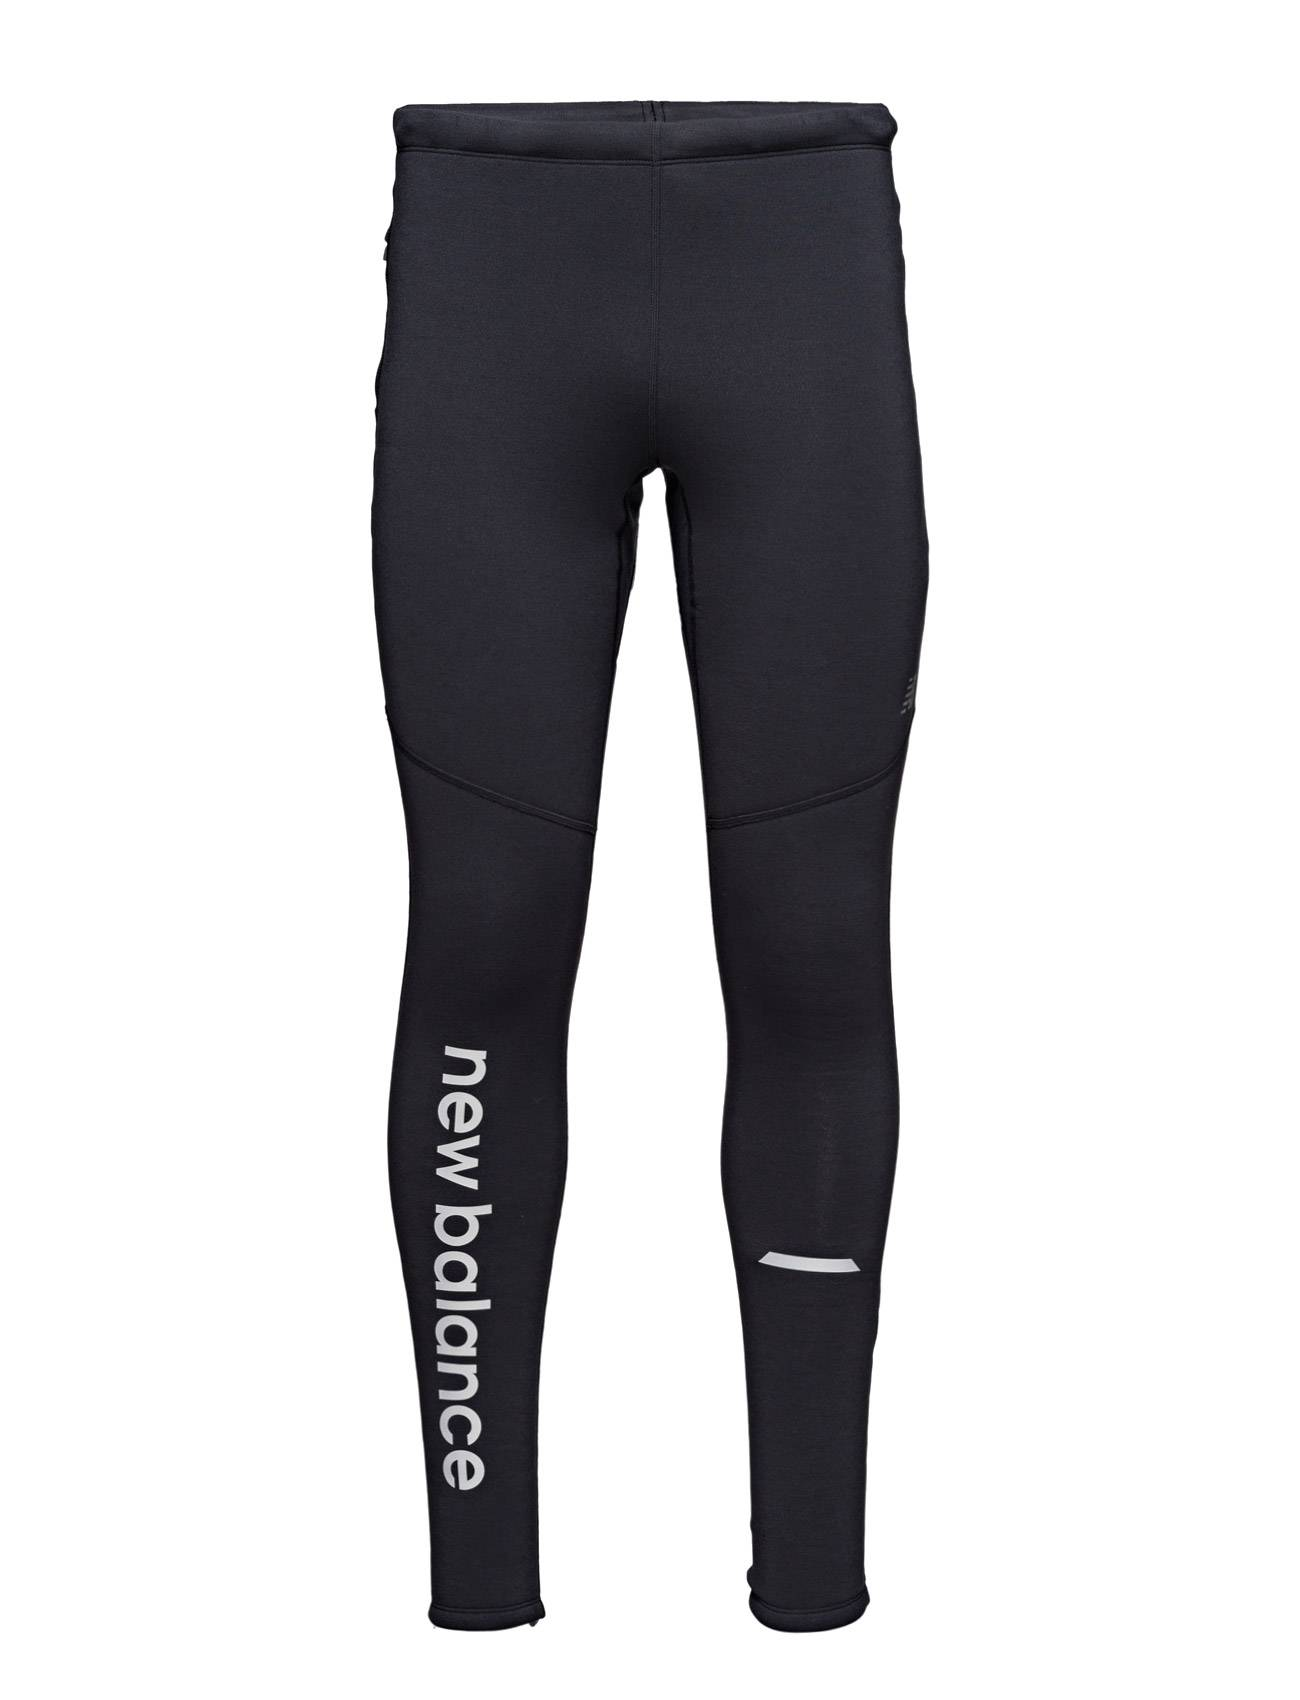 New Balance Performance Merino Tight